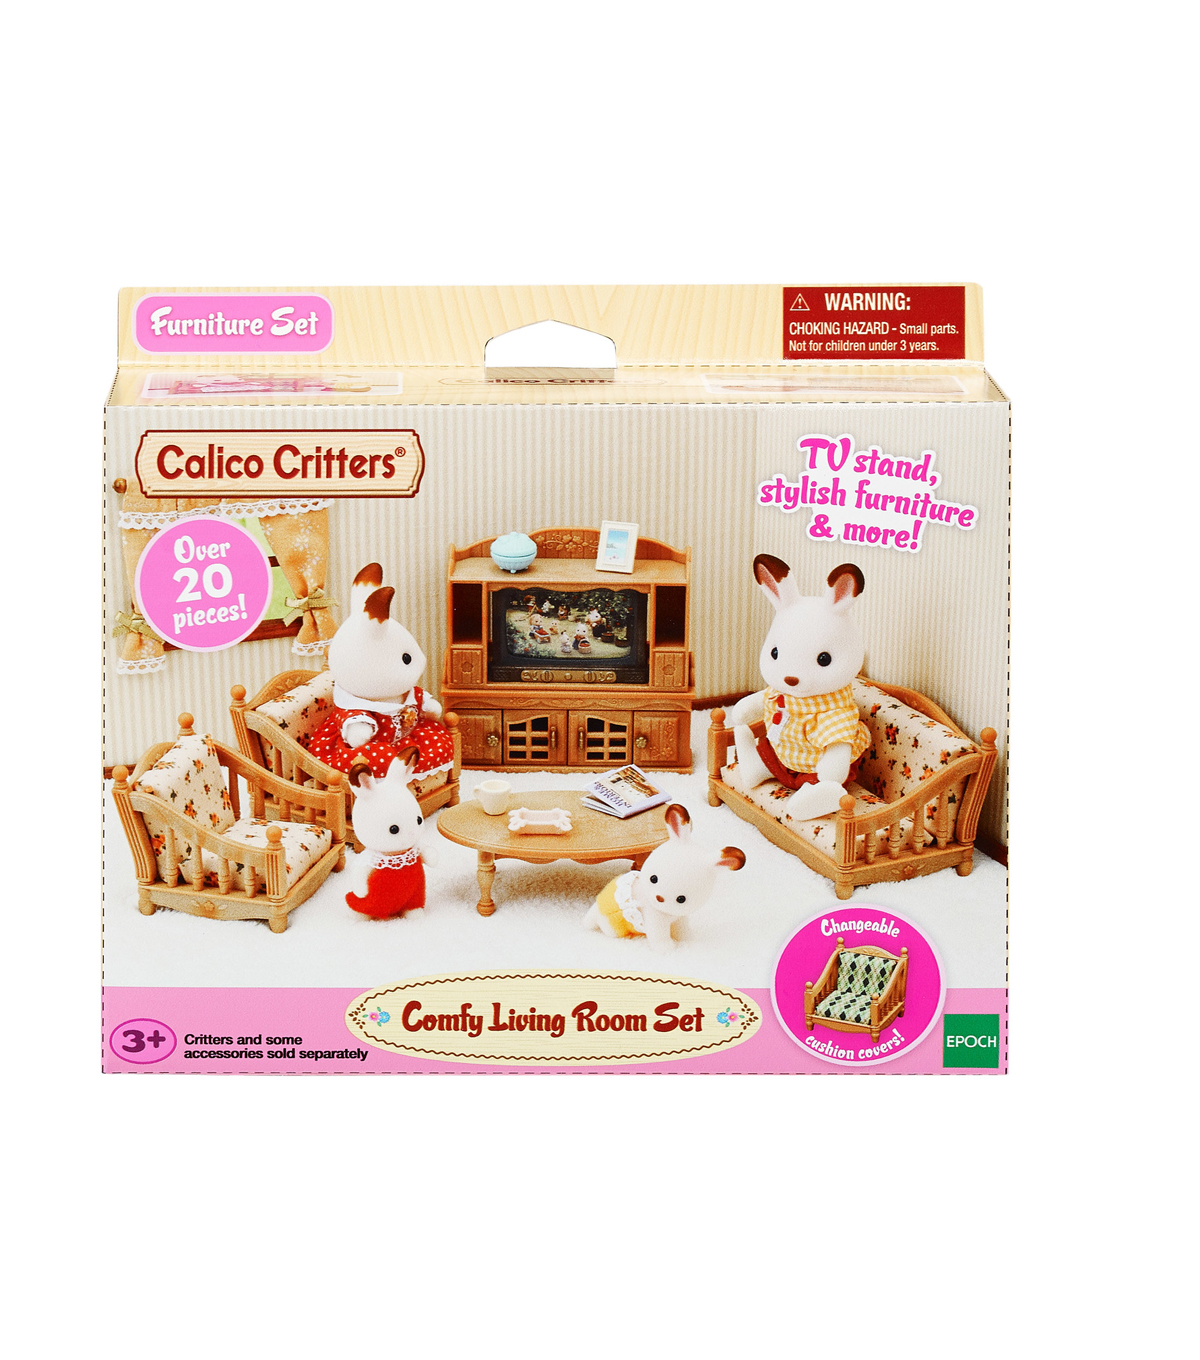 Calico Critters Living Room.Calico Critters Comfy Living Room Set